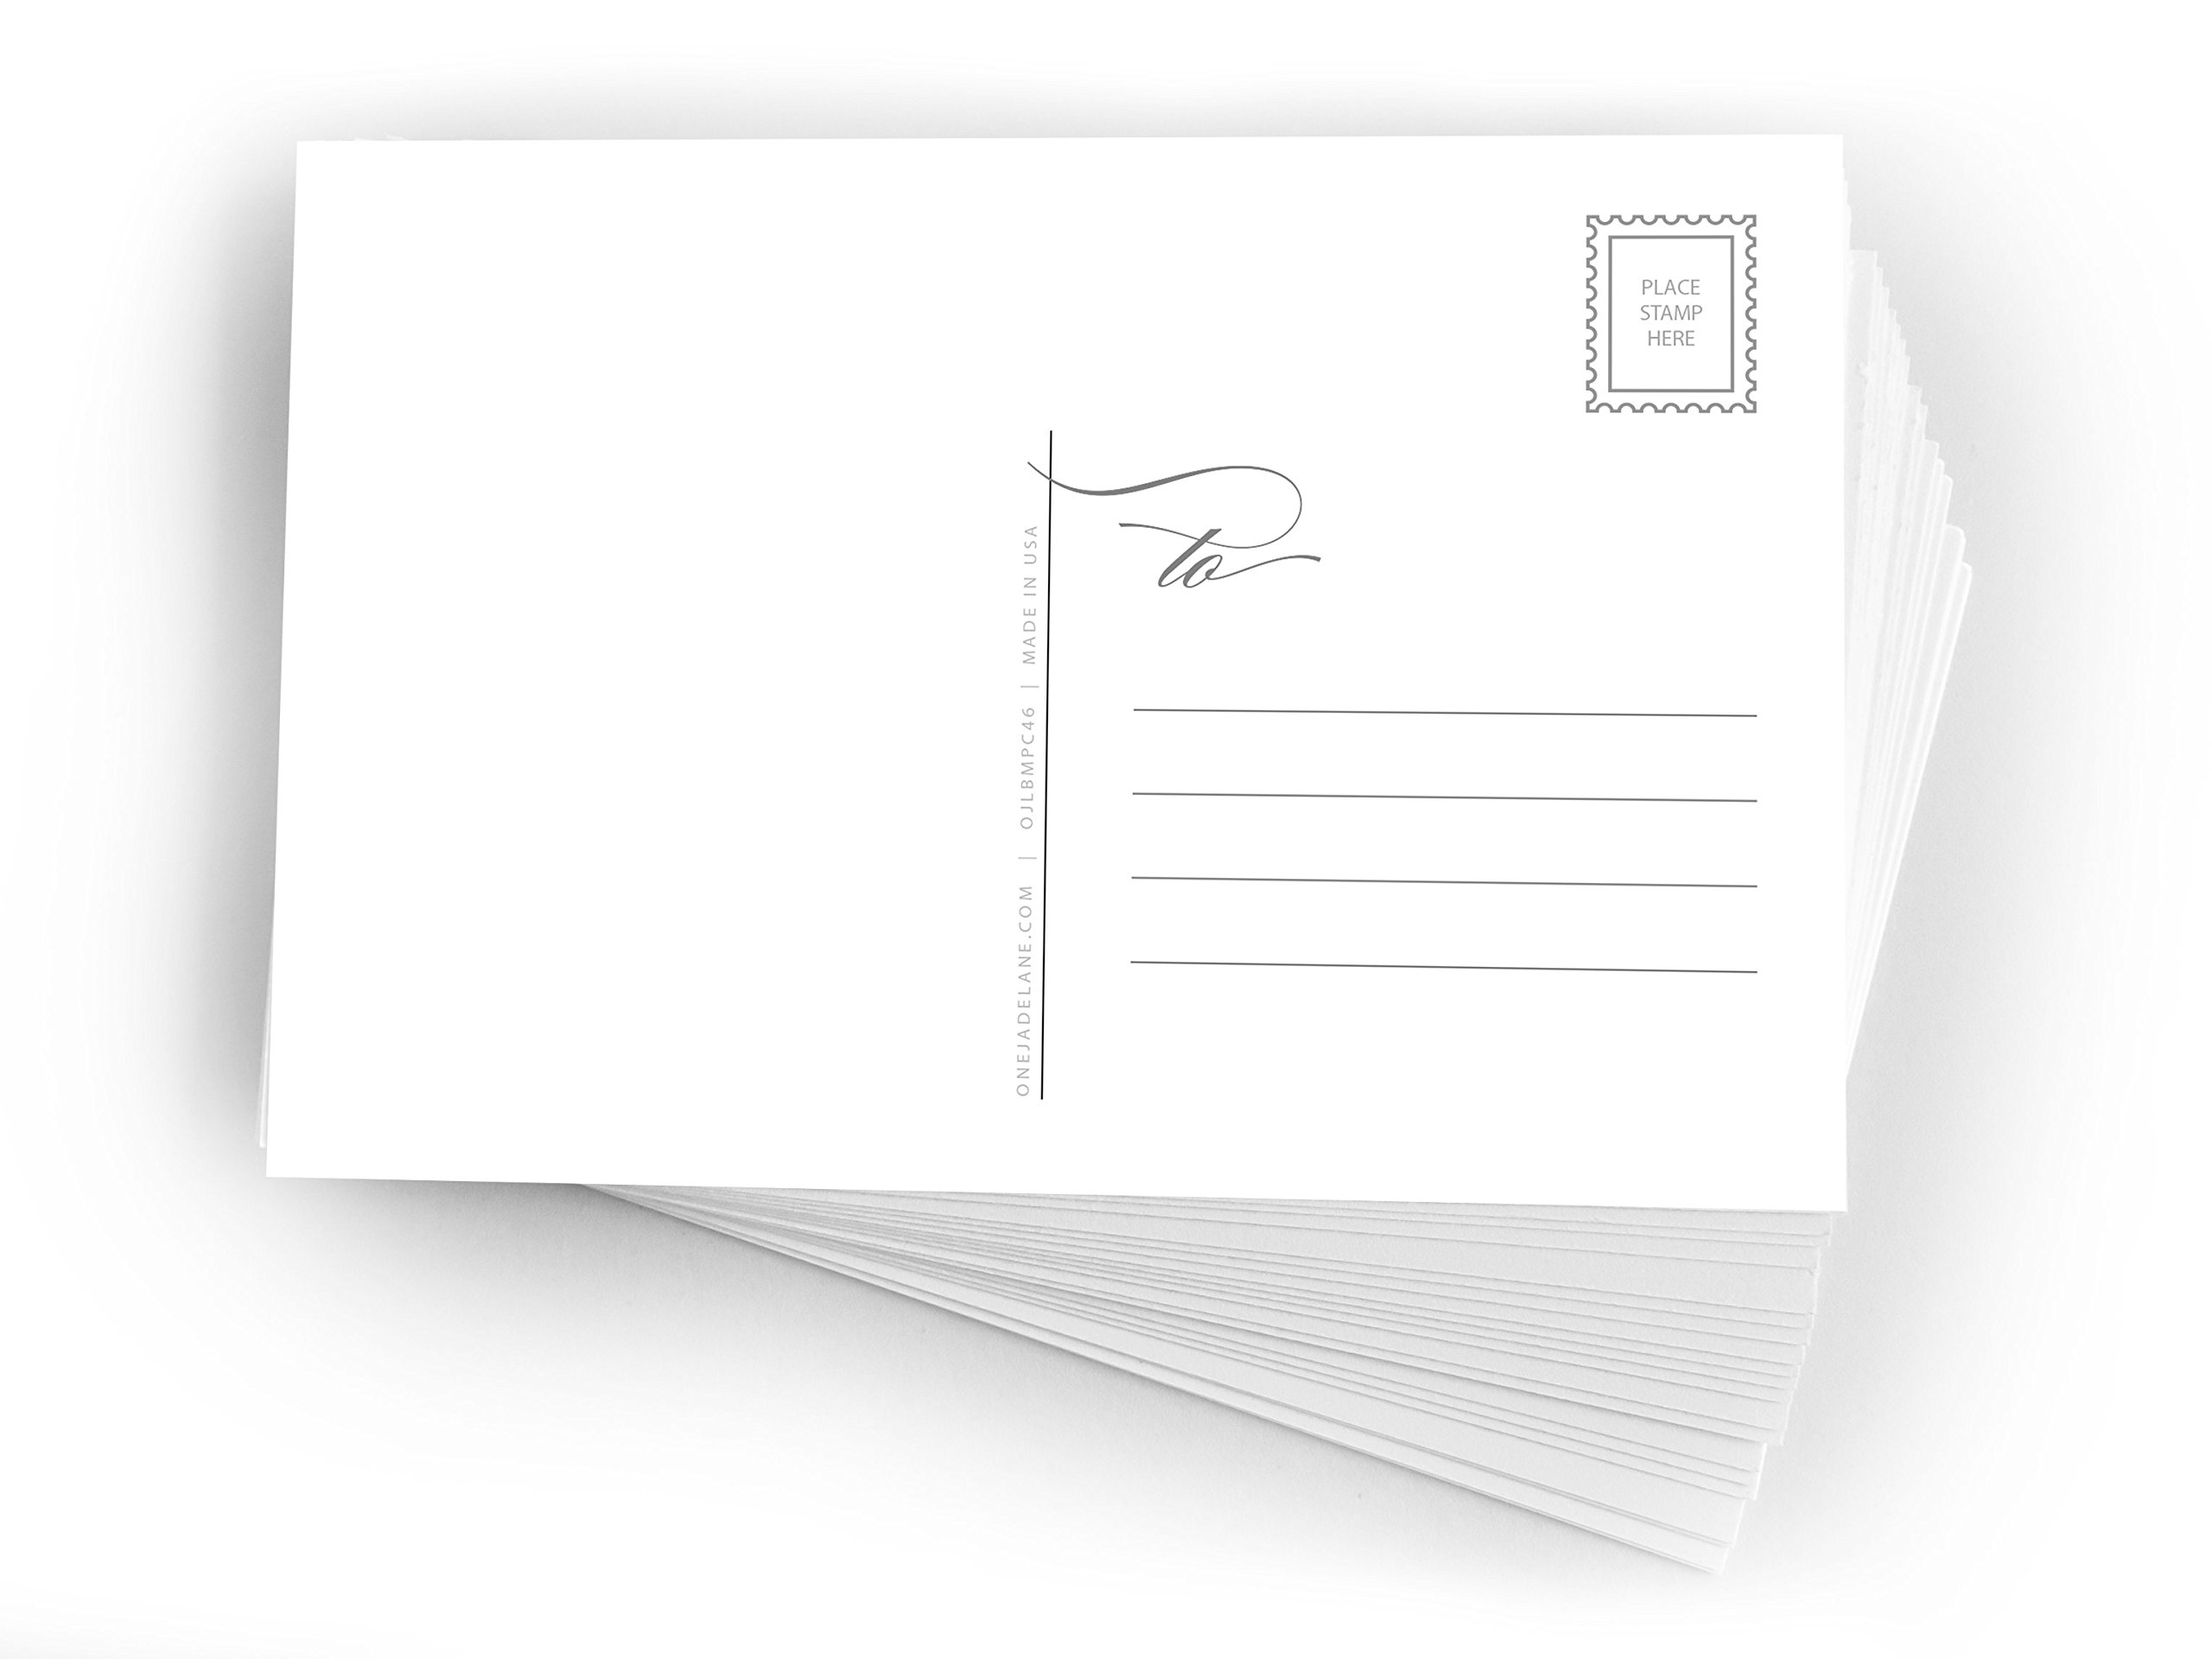 Blank Mailable Postcards - One Jade Lane - Blank Postcards Printable 4x6, Heavy Duty 14pt, Blank Postcards for Art or Printing with Mailing Side for Mailing, (50ct).